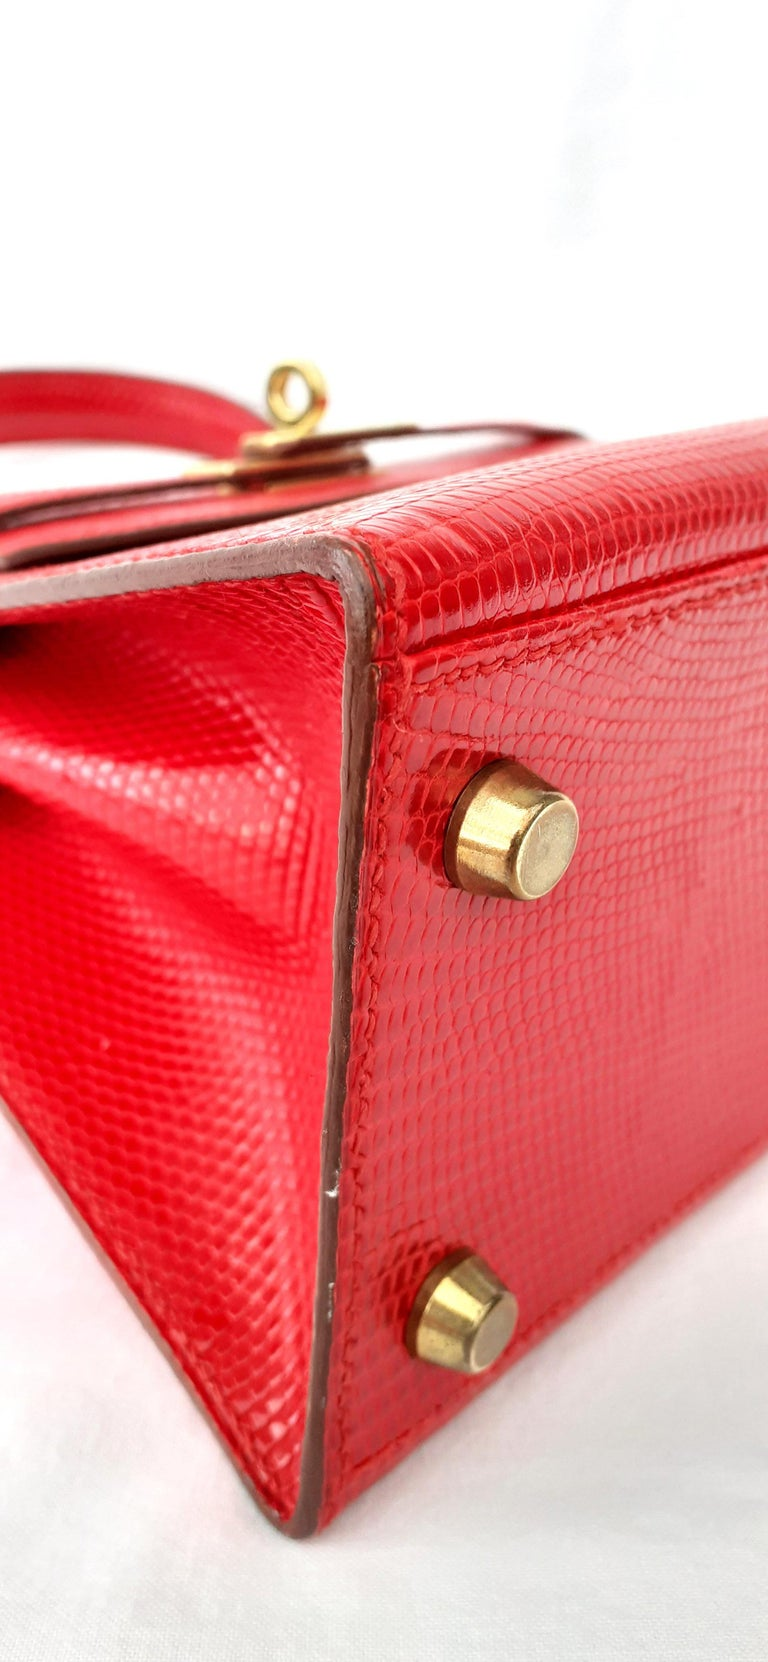 Exceptional Hermès Vintage Mini Kelly Sellier Bag Shiny Red Lizard Gold Hdw 20cm For Sale 9